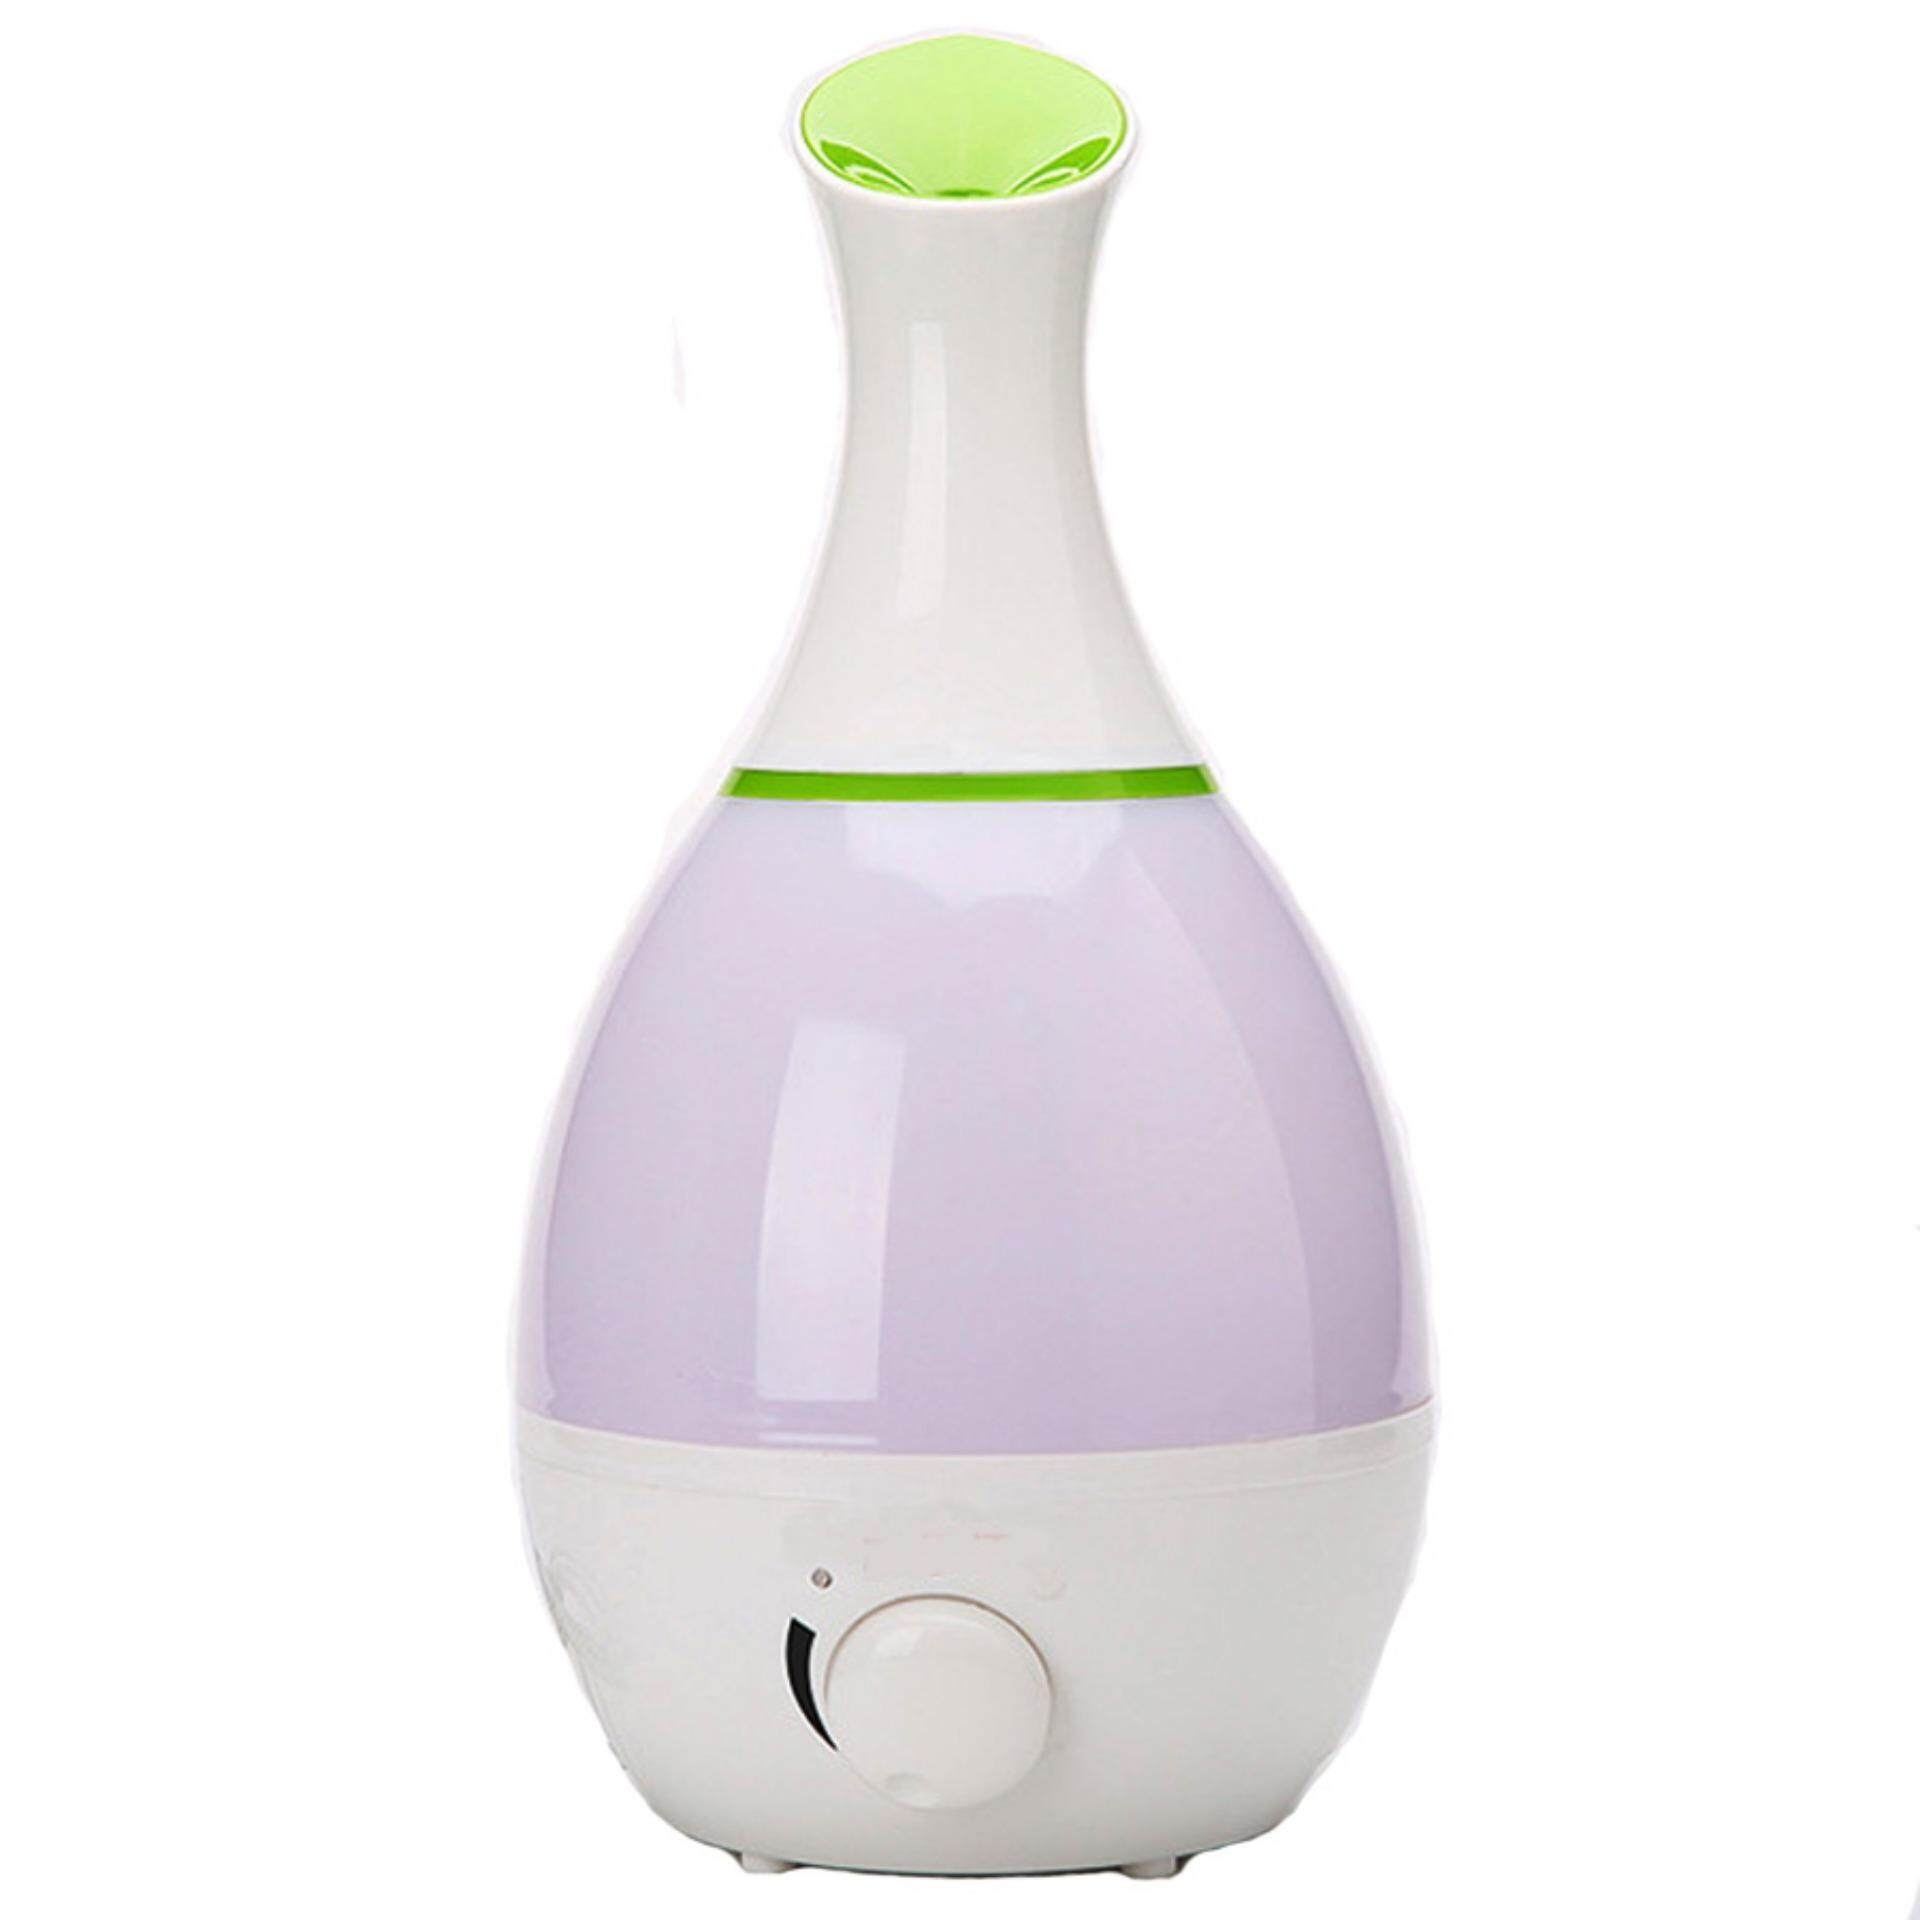 Air Purifiers By Oem Reviews Ratings And Best Price In Kl Selangor Hitachi Purifier Ep A3000 W Ultrasonic Aromatherapy Humidifiers Single Spray Outlet Colorful Led Light 3l Large Capacity Vase Shape Green Color